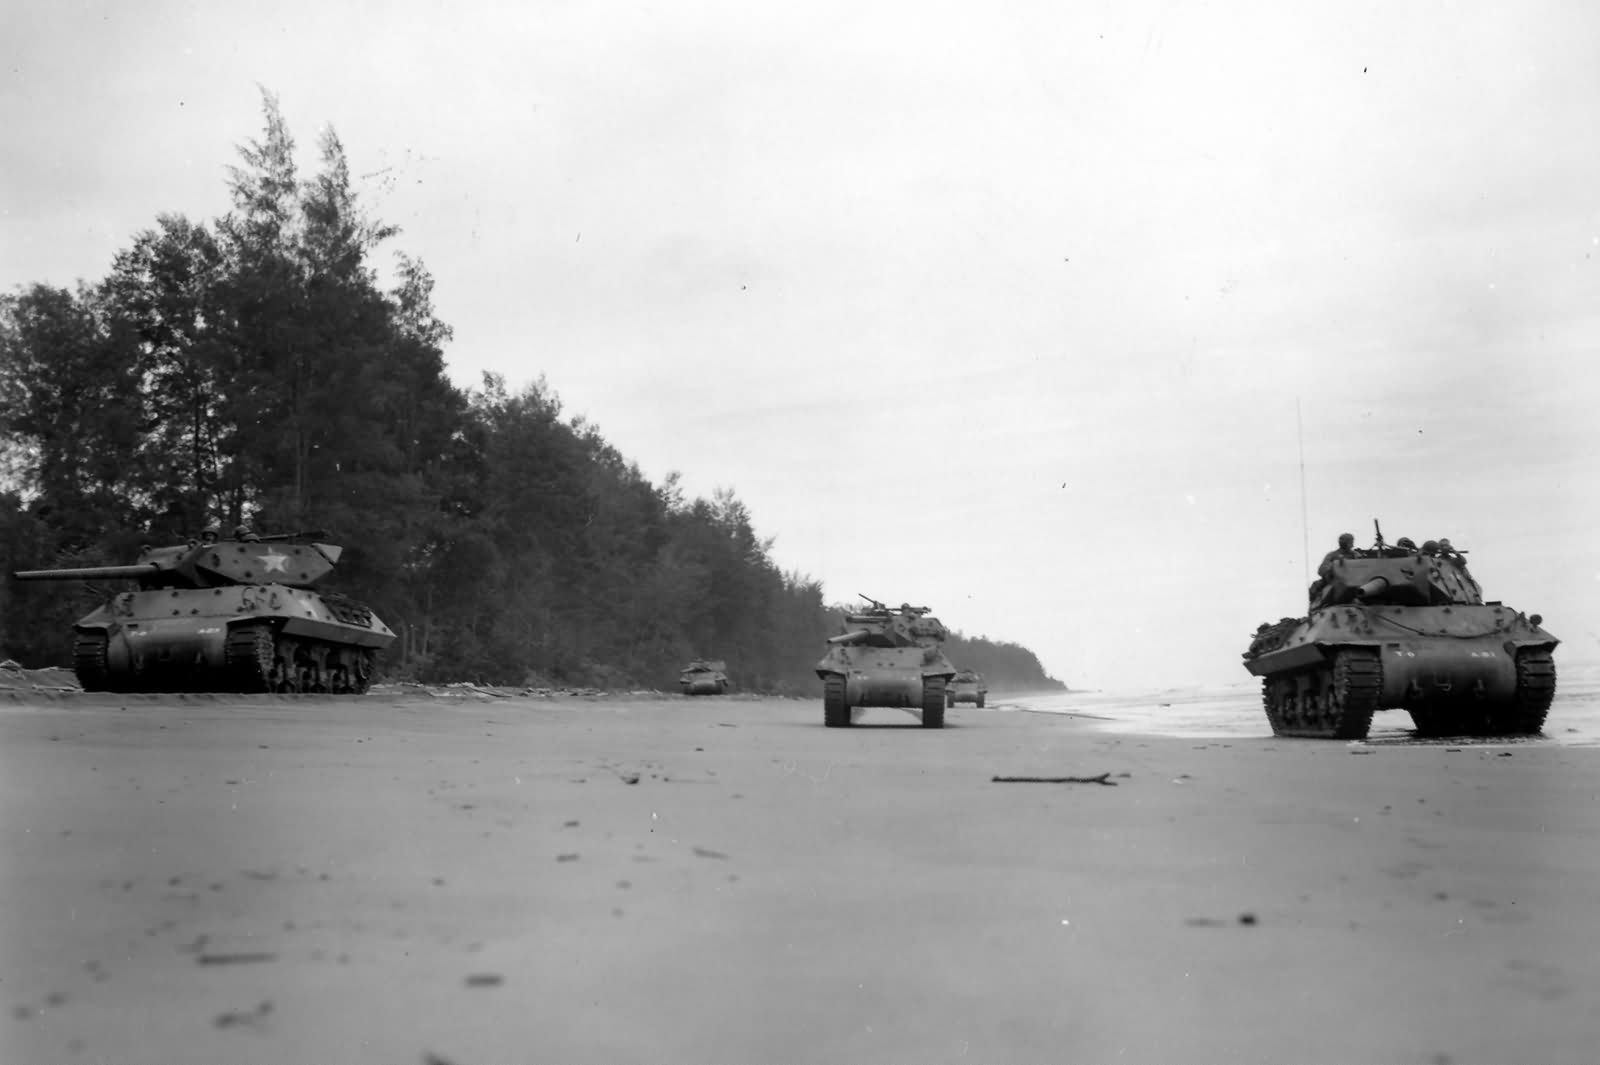 M10_Wolverine_32nd_Infantry_Division_Tank_Destroyers_At_Aitape_New_Guinea_1944